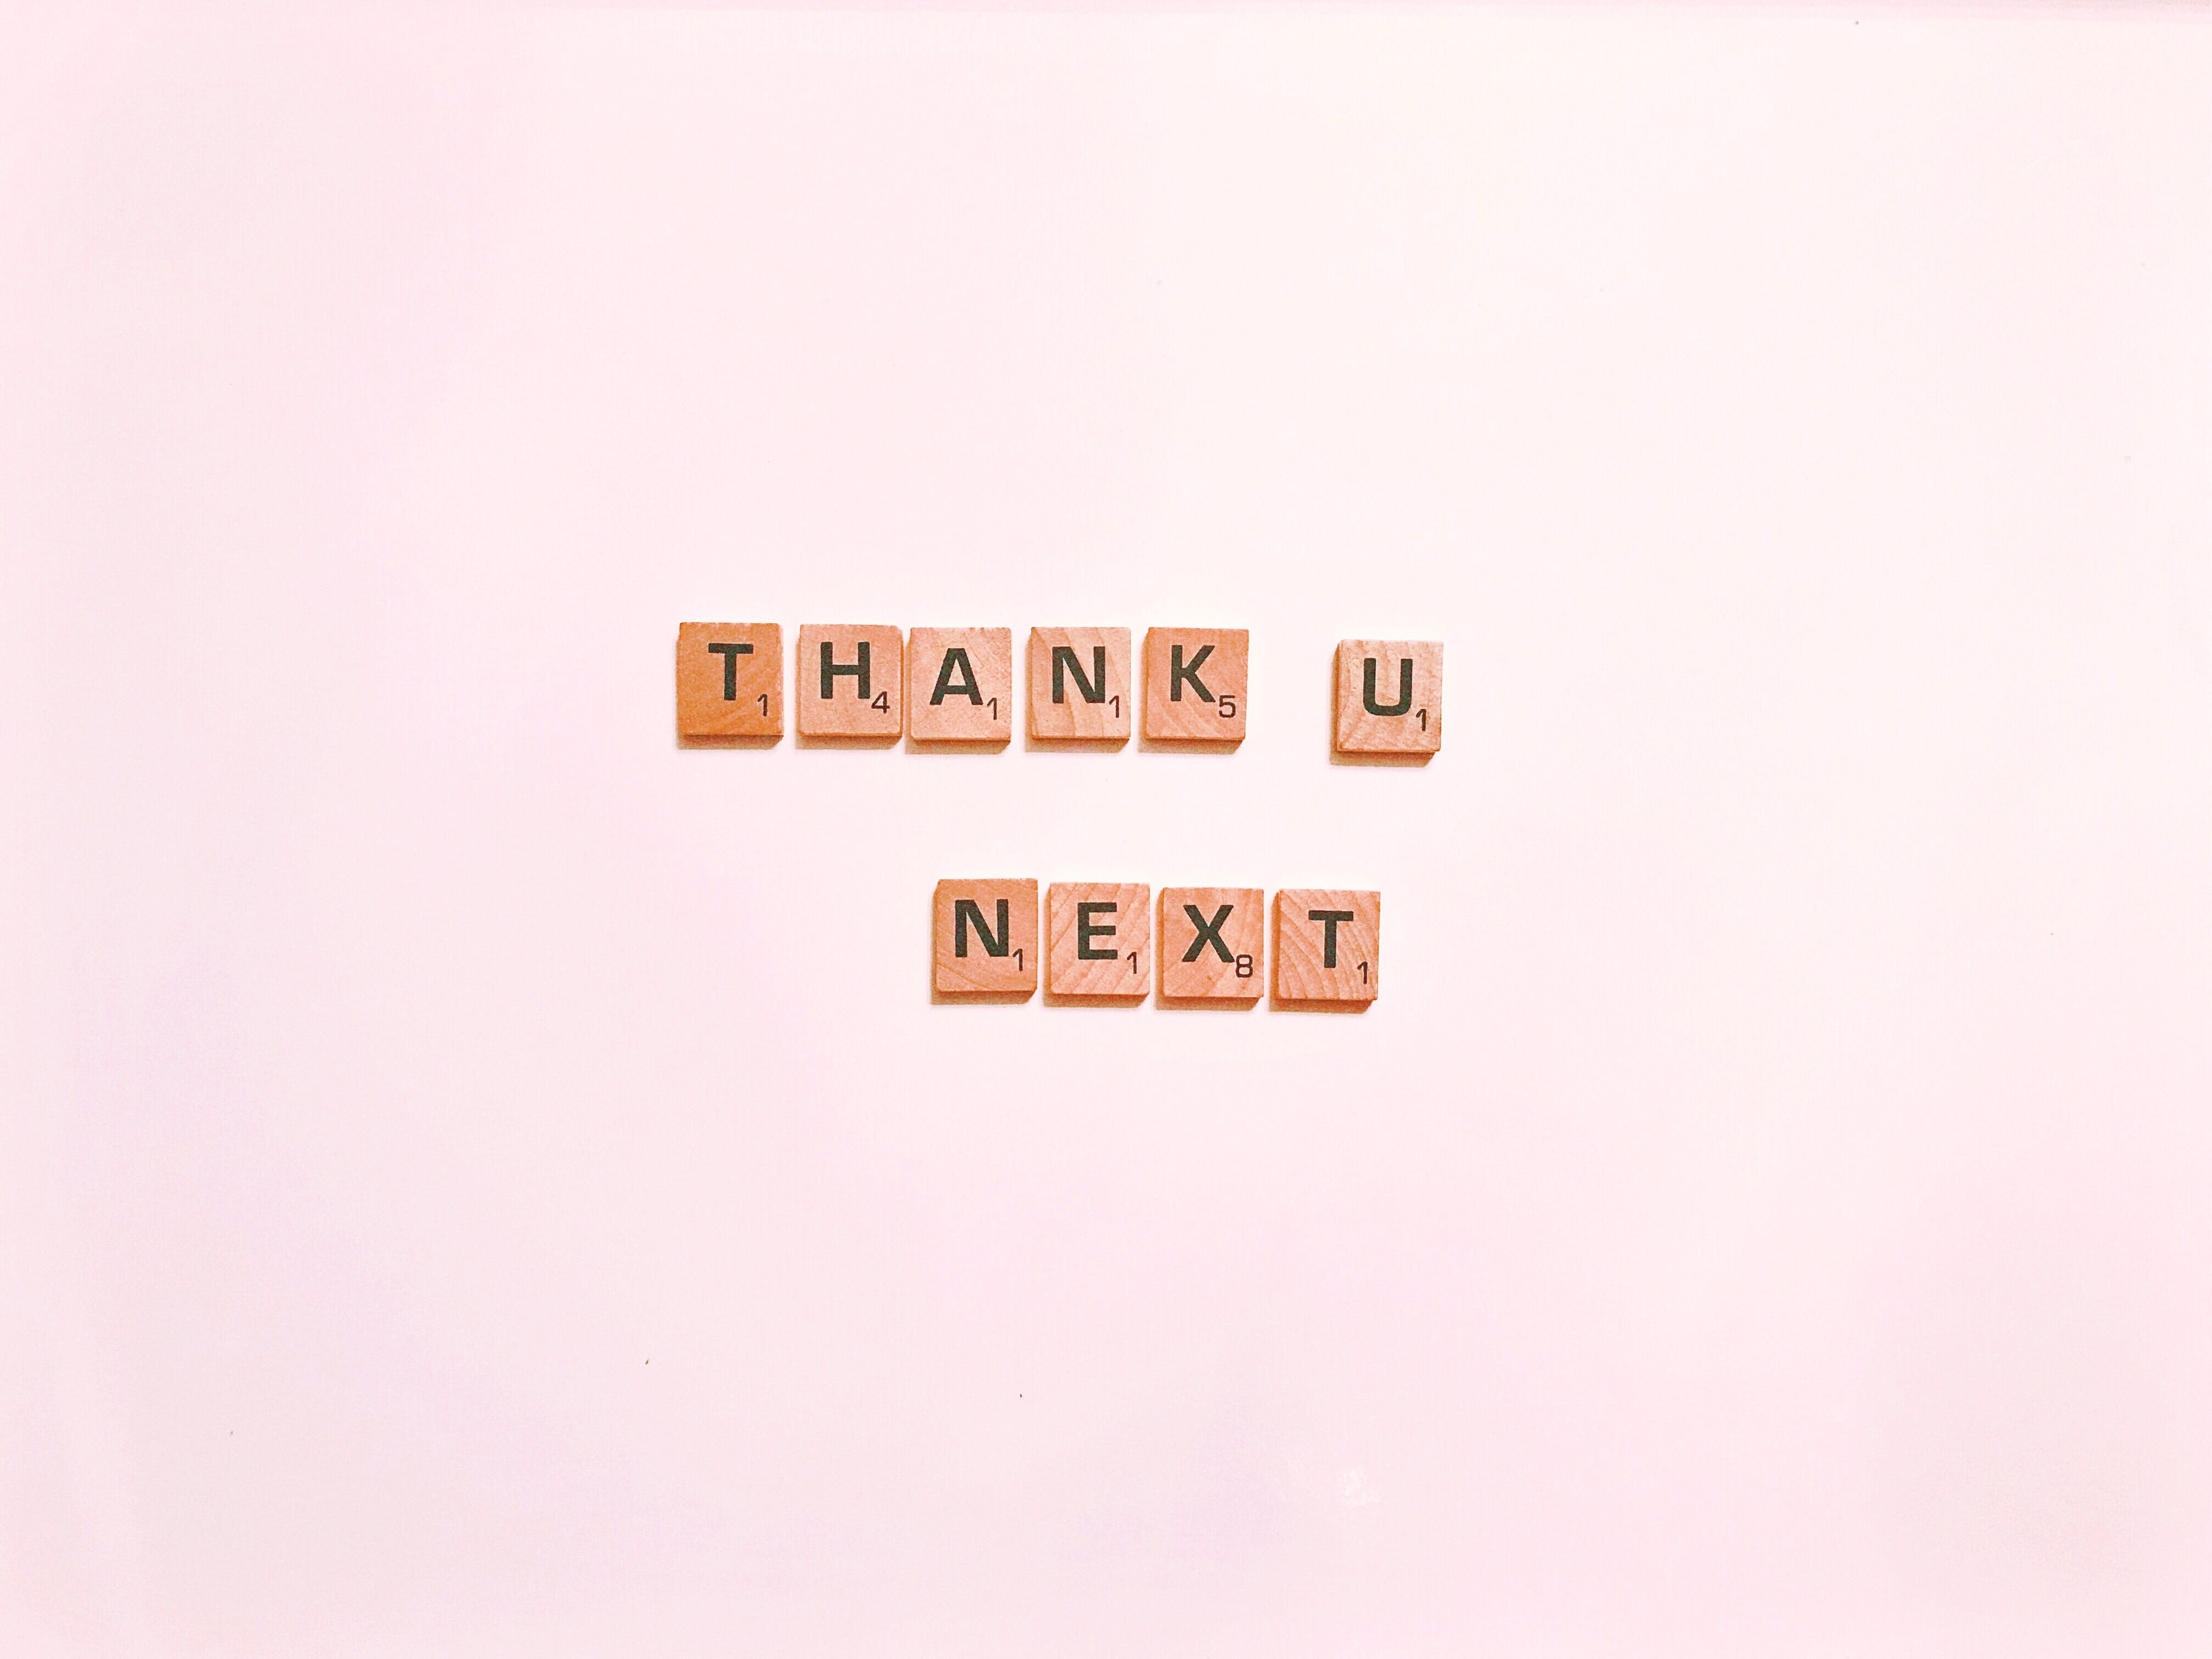 Scrabble Letters Spelling Thank U Next